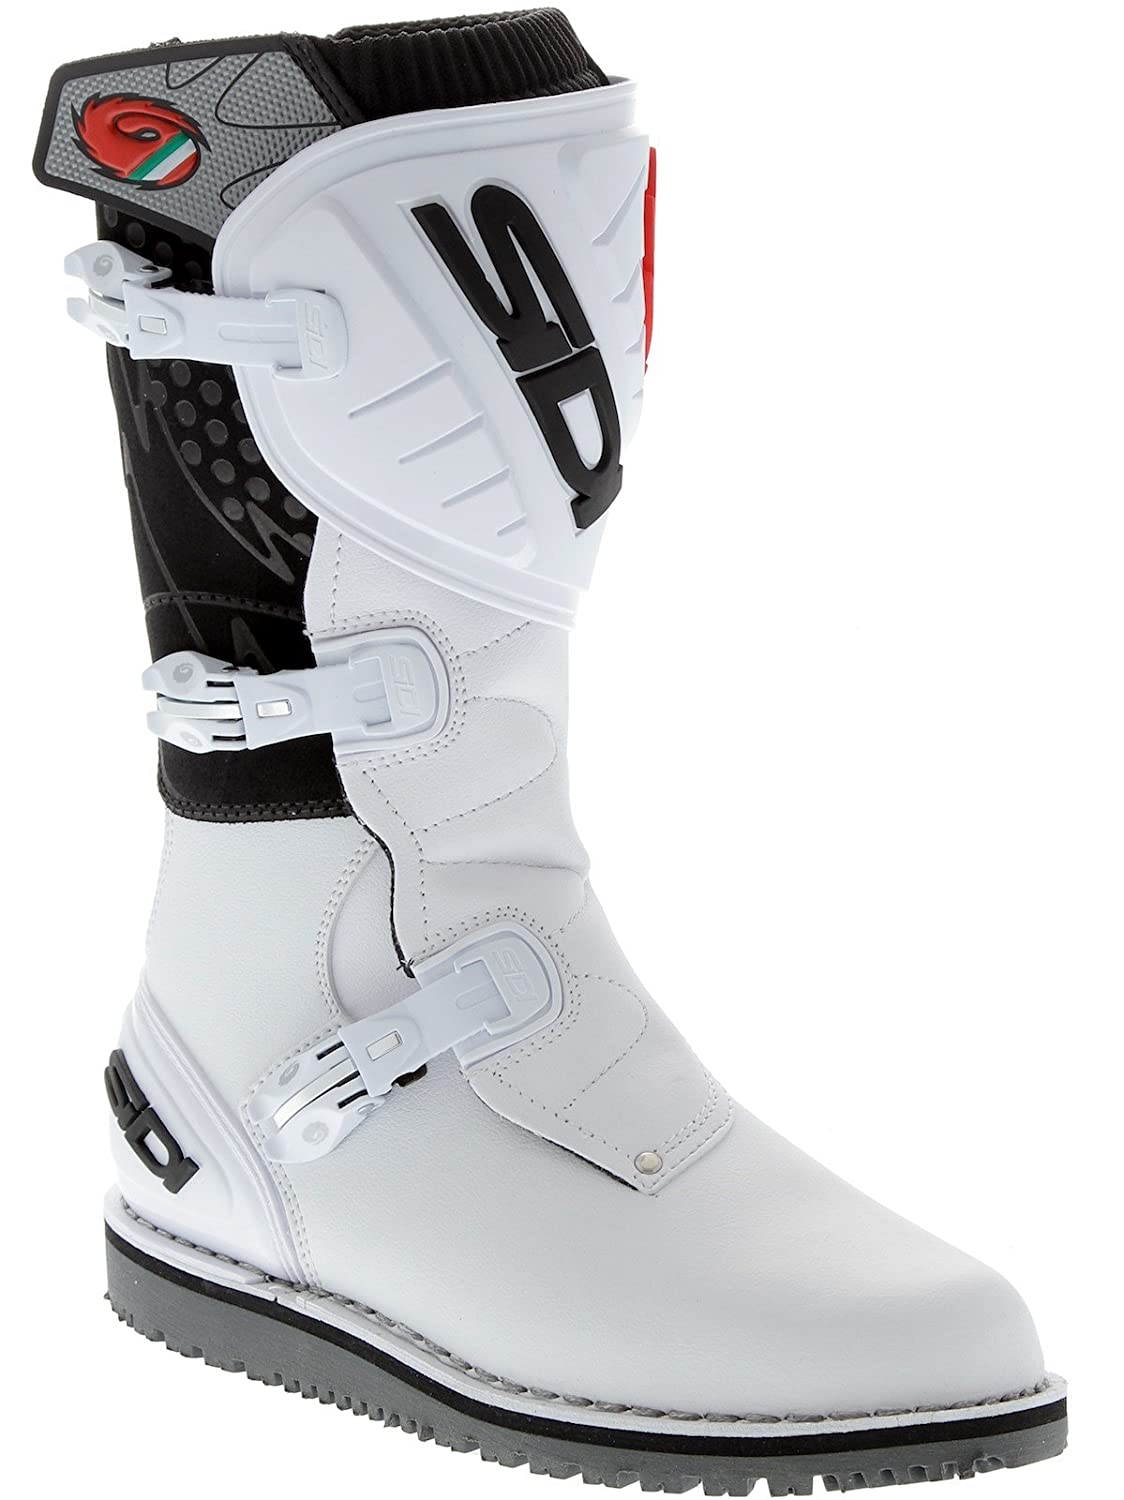 Merlin Motorcycle G24 Legacy Outlast Boots WP Black 46